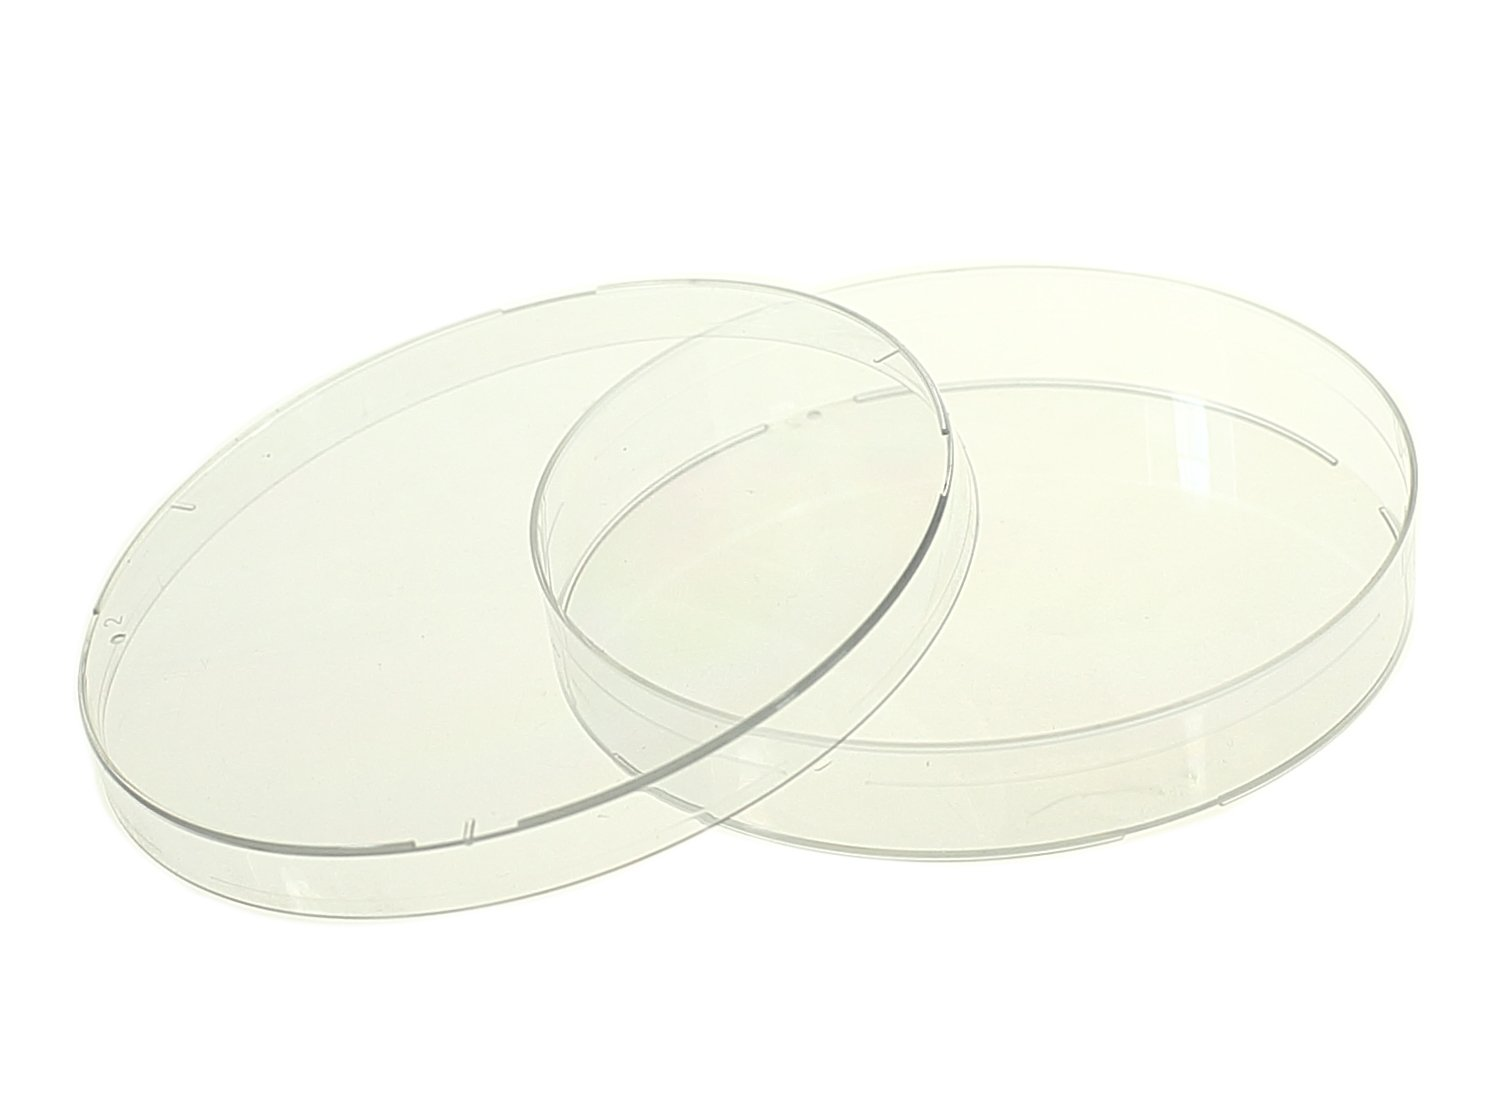 Nest Scientific 753001 Polystyrene Petri Dish, Semi-Stackable, Sterile, 100 mm x 15 mm, 20 per Bag, 500 per Case (Pack of 500) by Nest